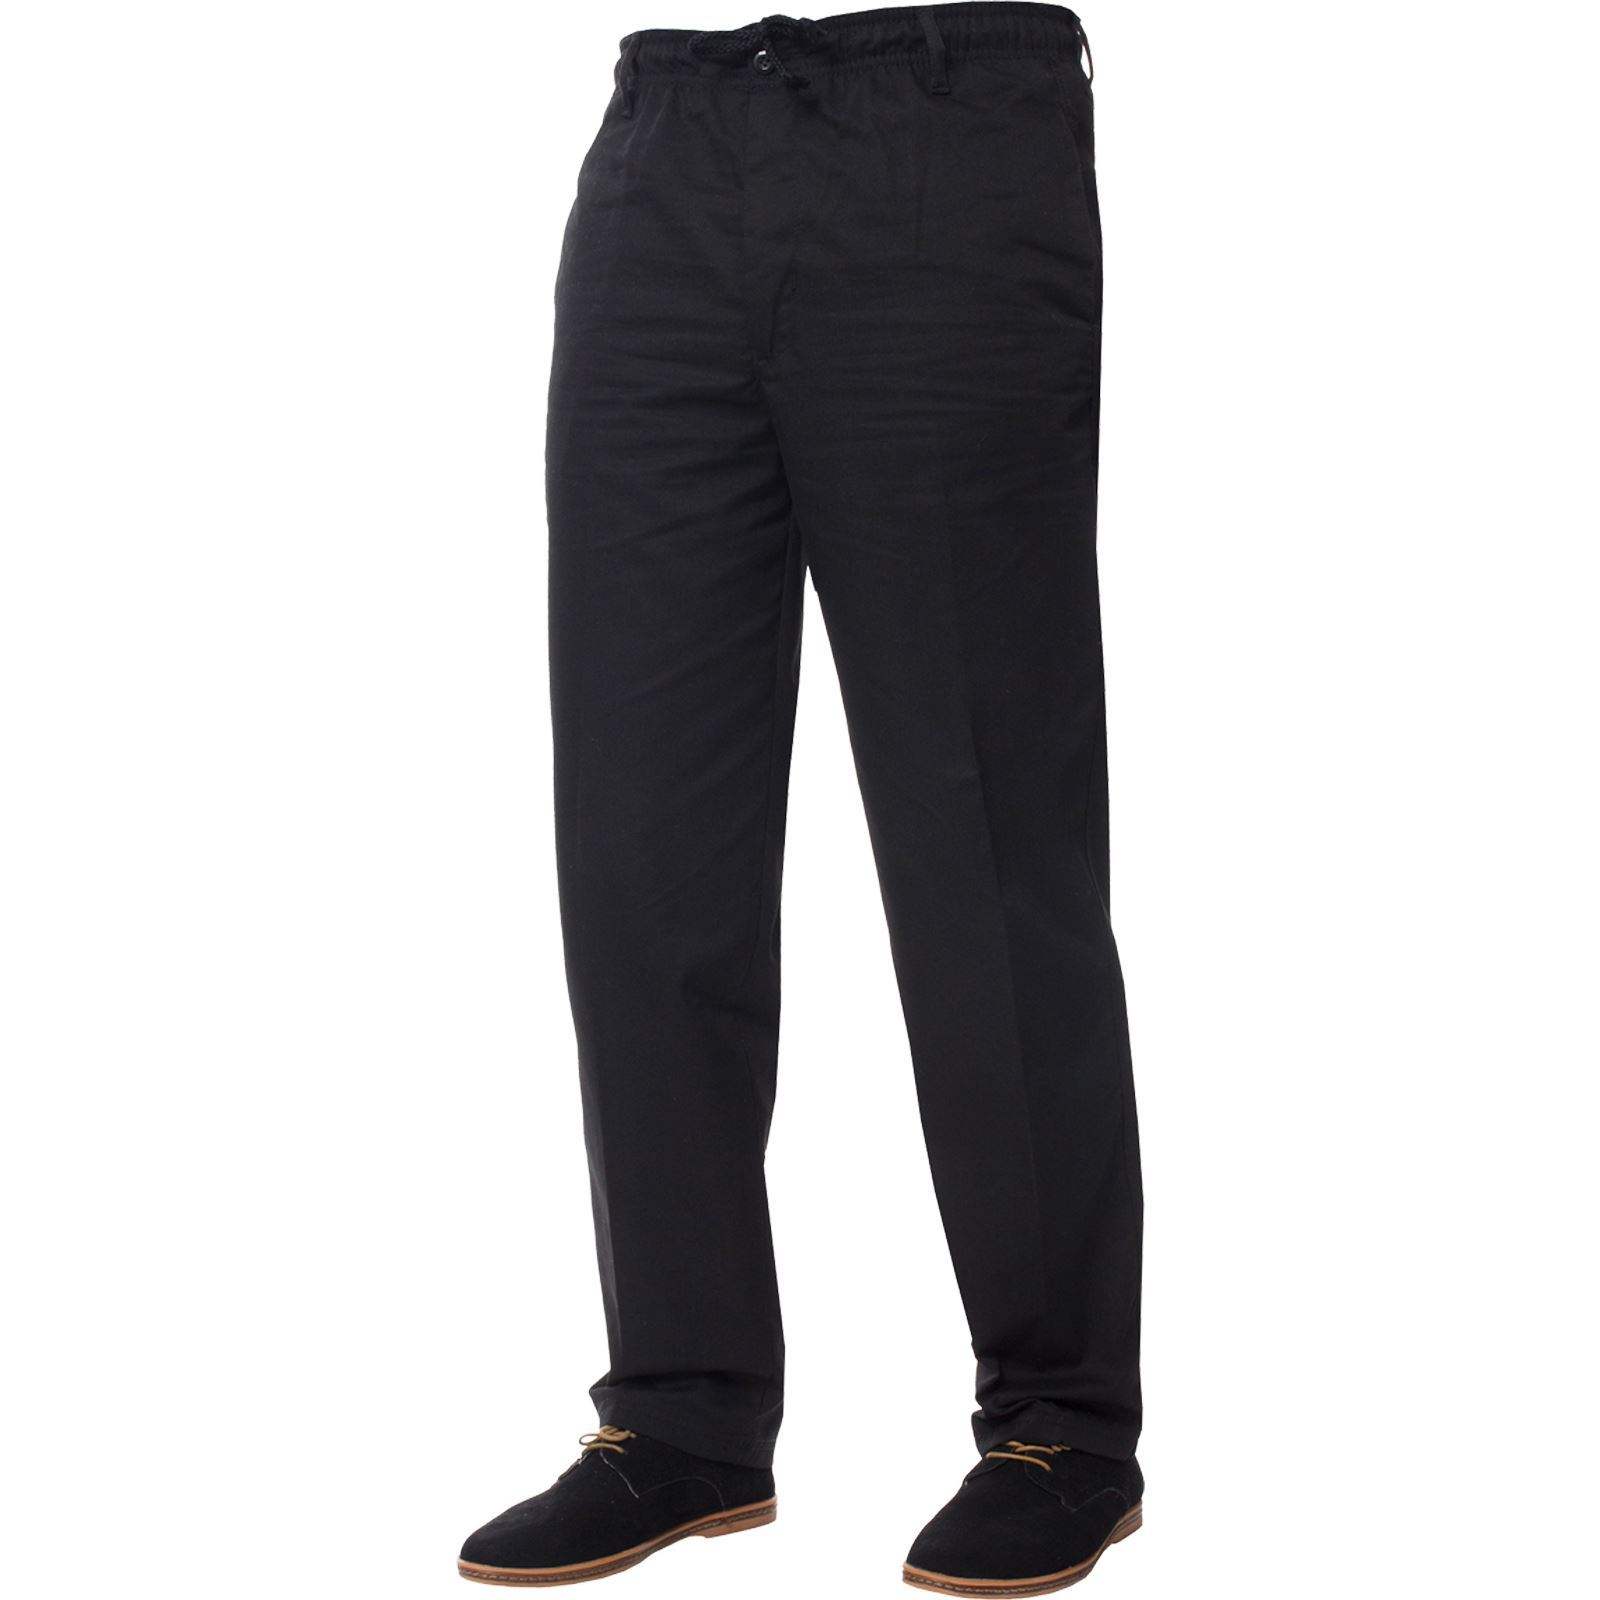 Mens-Rugby-Trousers-Kruze-Elasticated-Waist-Drawstring-Pants-Regular-King-Sizes thumbnail 5